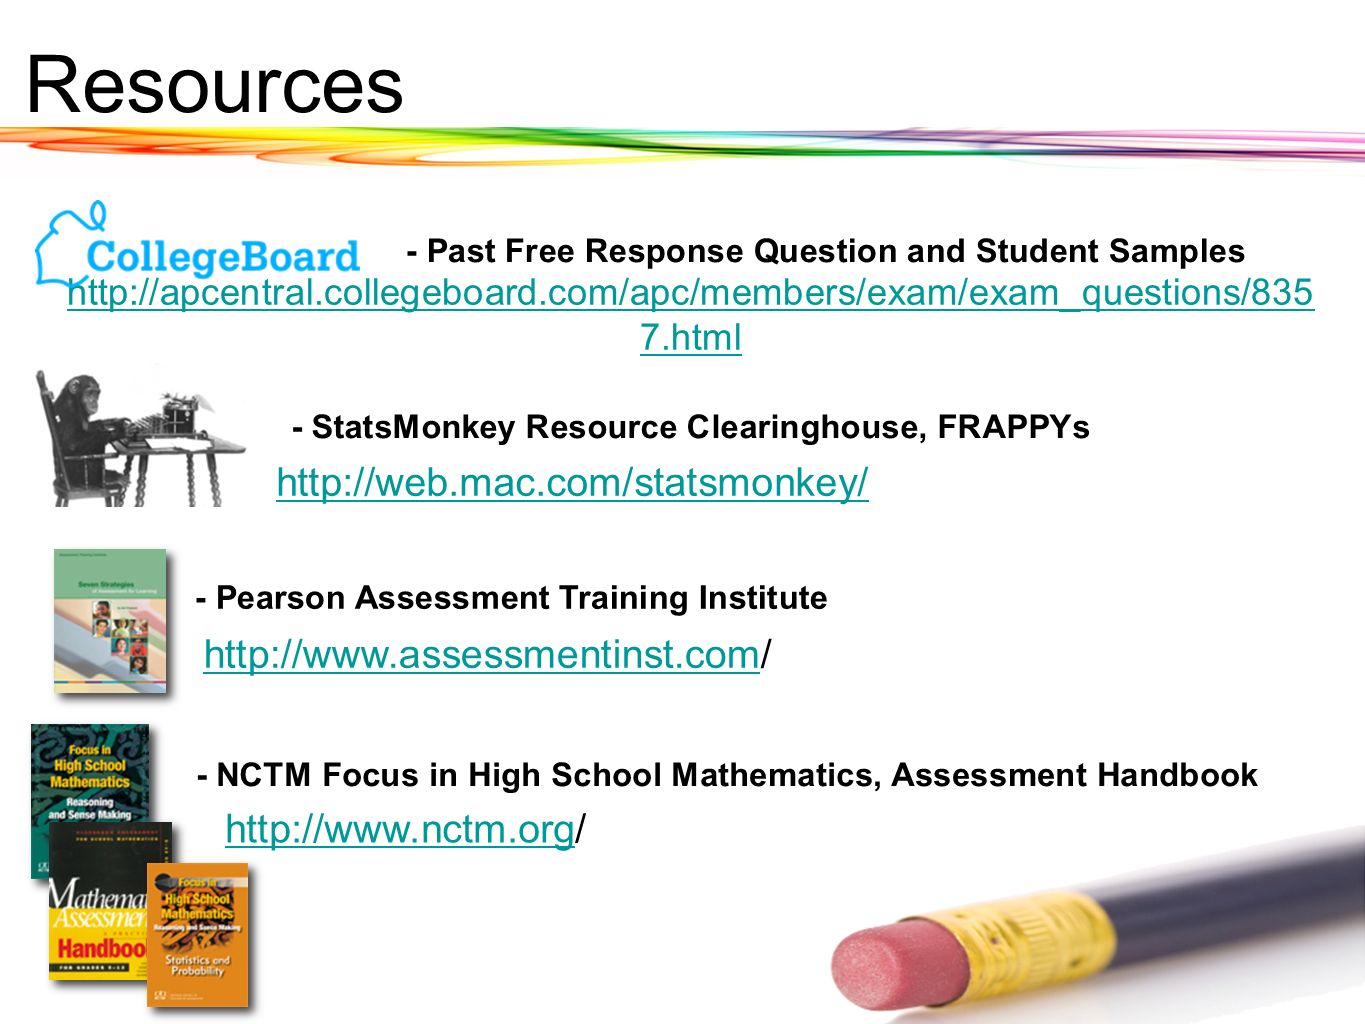 Resources http://apcentral.collegeboard.com/apc/members/exam/exam_questions/835 7.html - Past Free Response Question and Student Samples http://web.ma